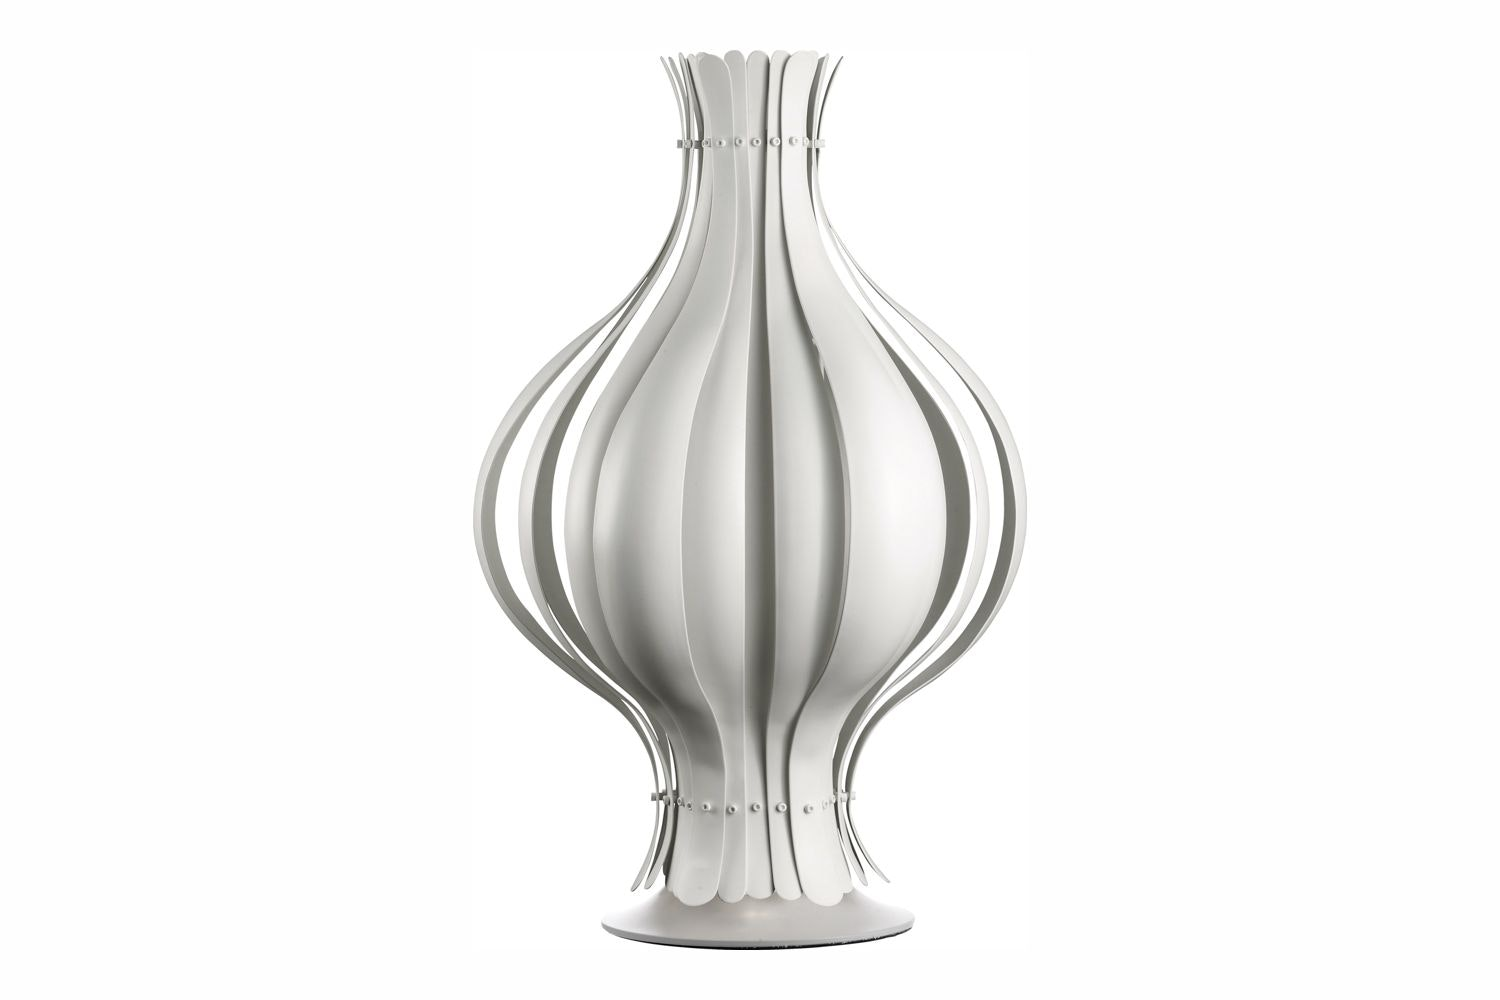 Onion Table Lamp in White by Verner Panton for Verpan